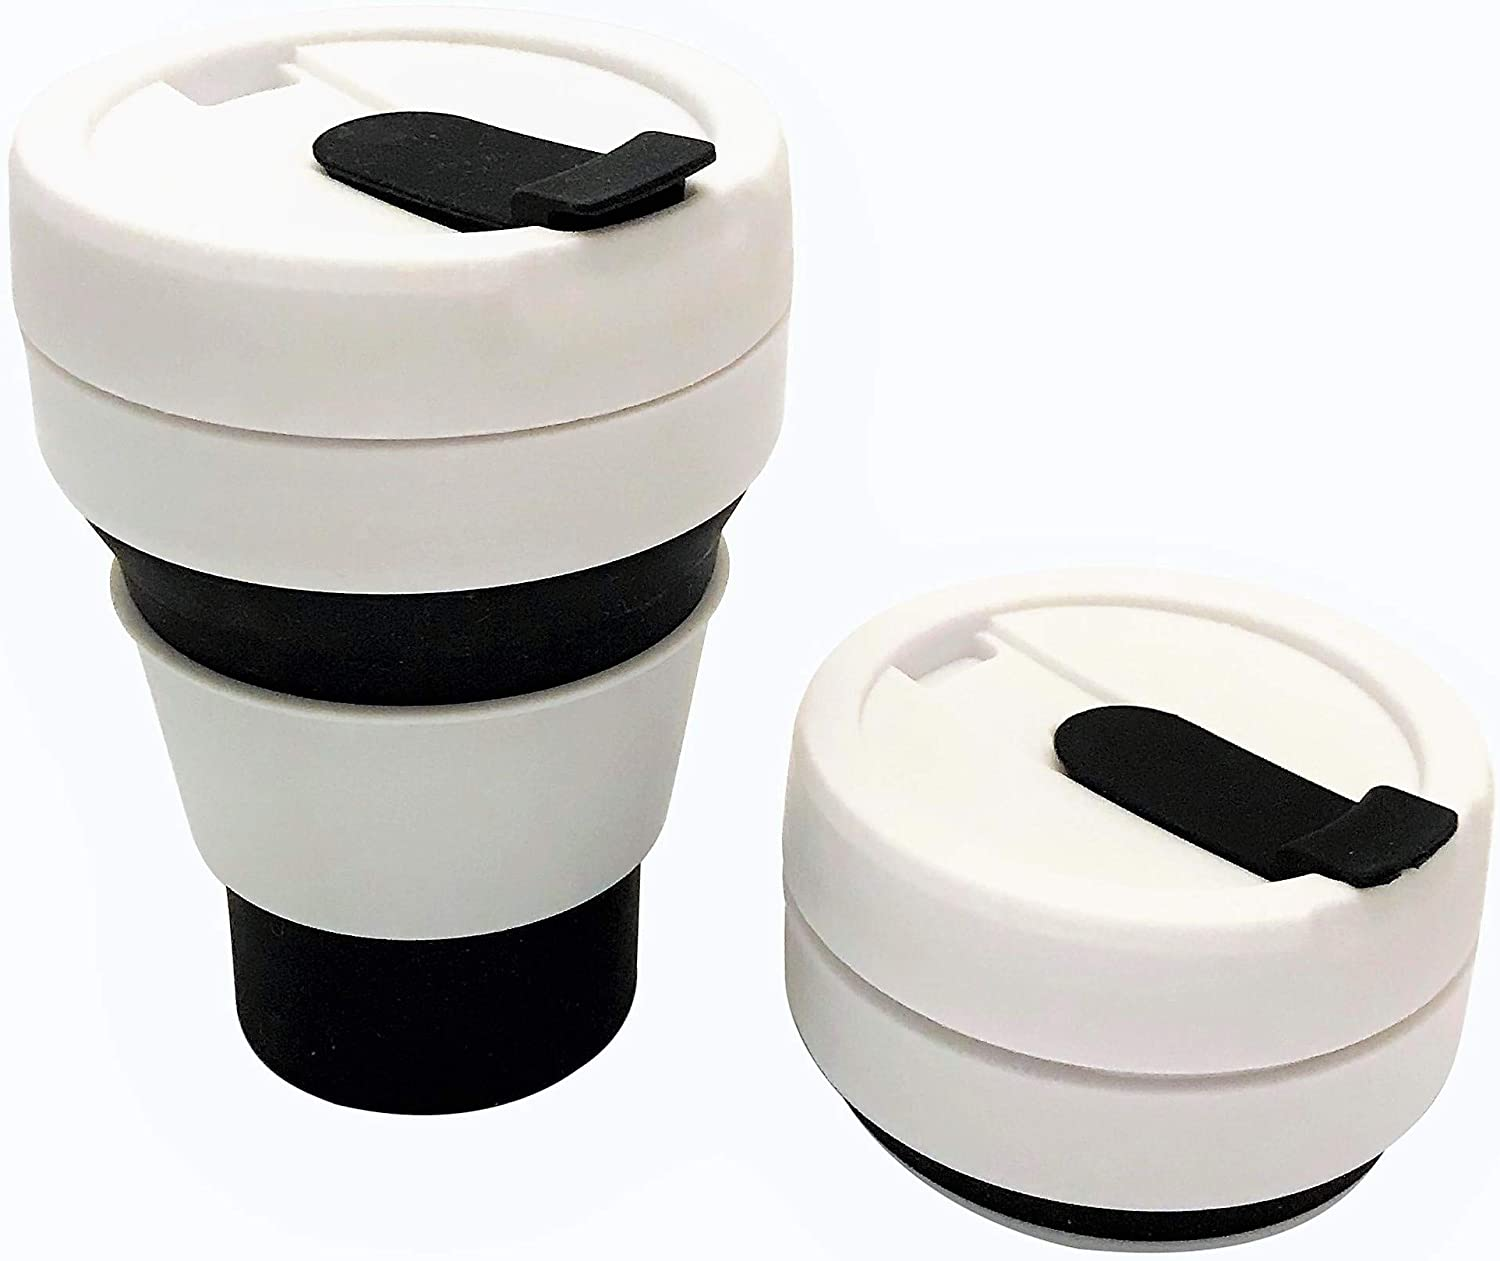 HUNU | Folding Reusable Coffee Cup That Fits In Your Pocket